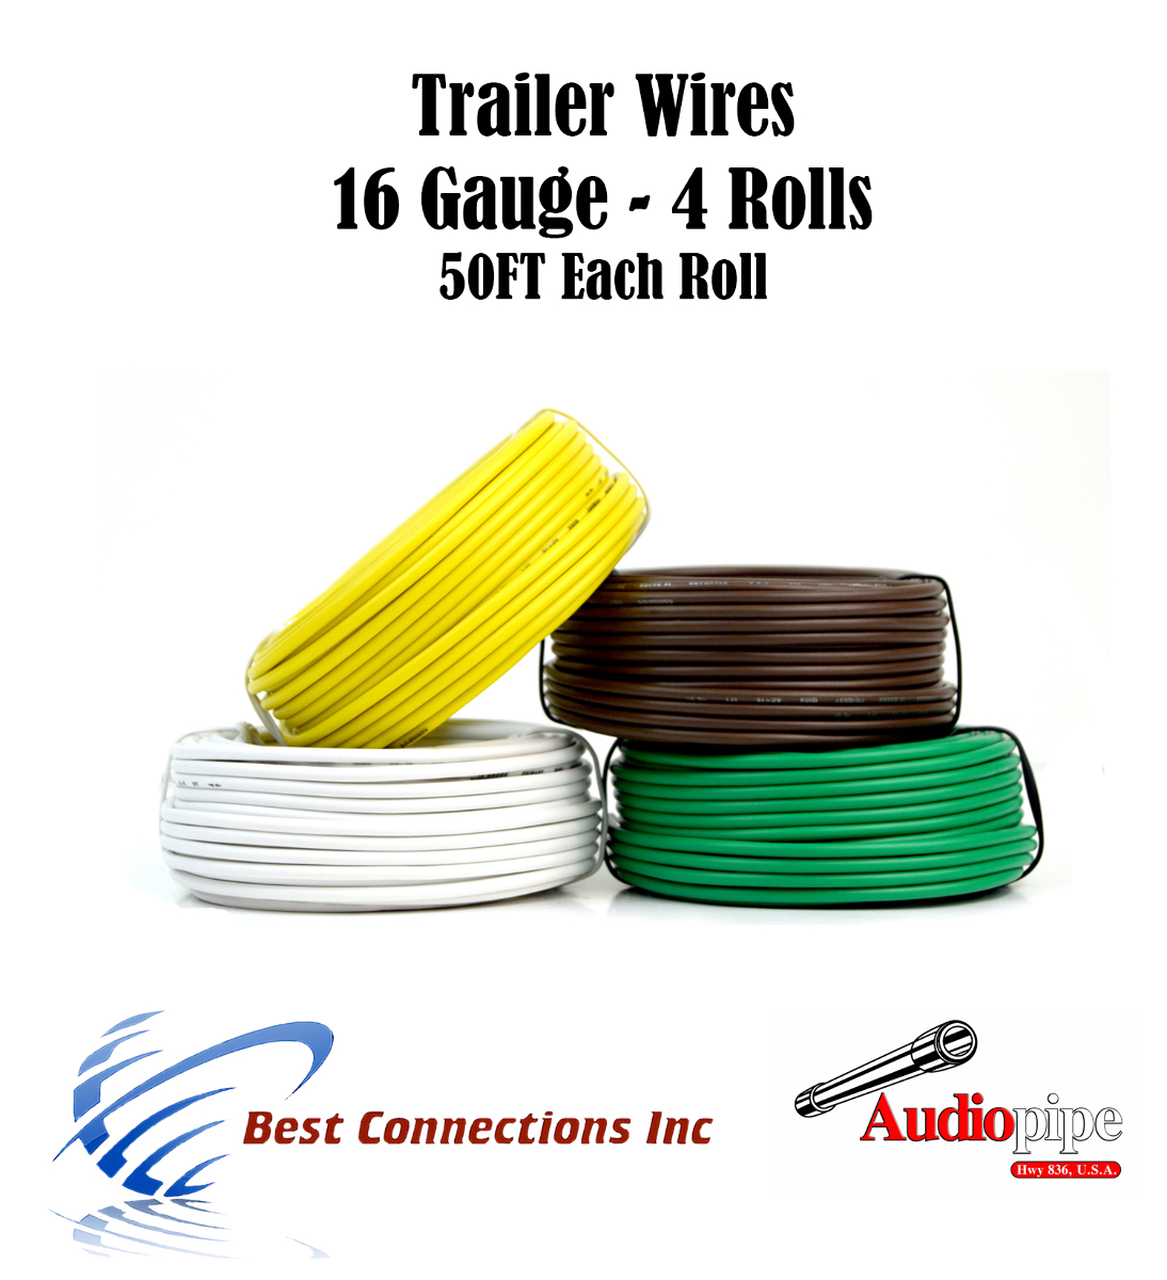 small resolution of 4 way trailer wire light cable for harness 50 ft each roll 16 gauge 4 colors